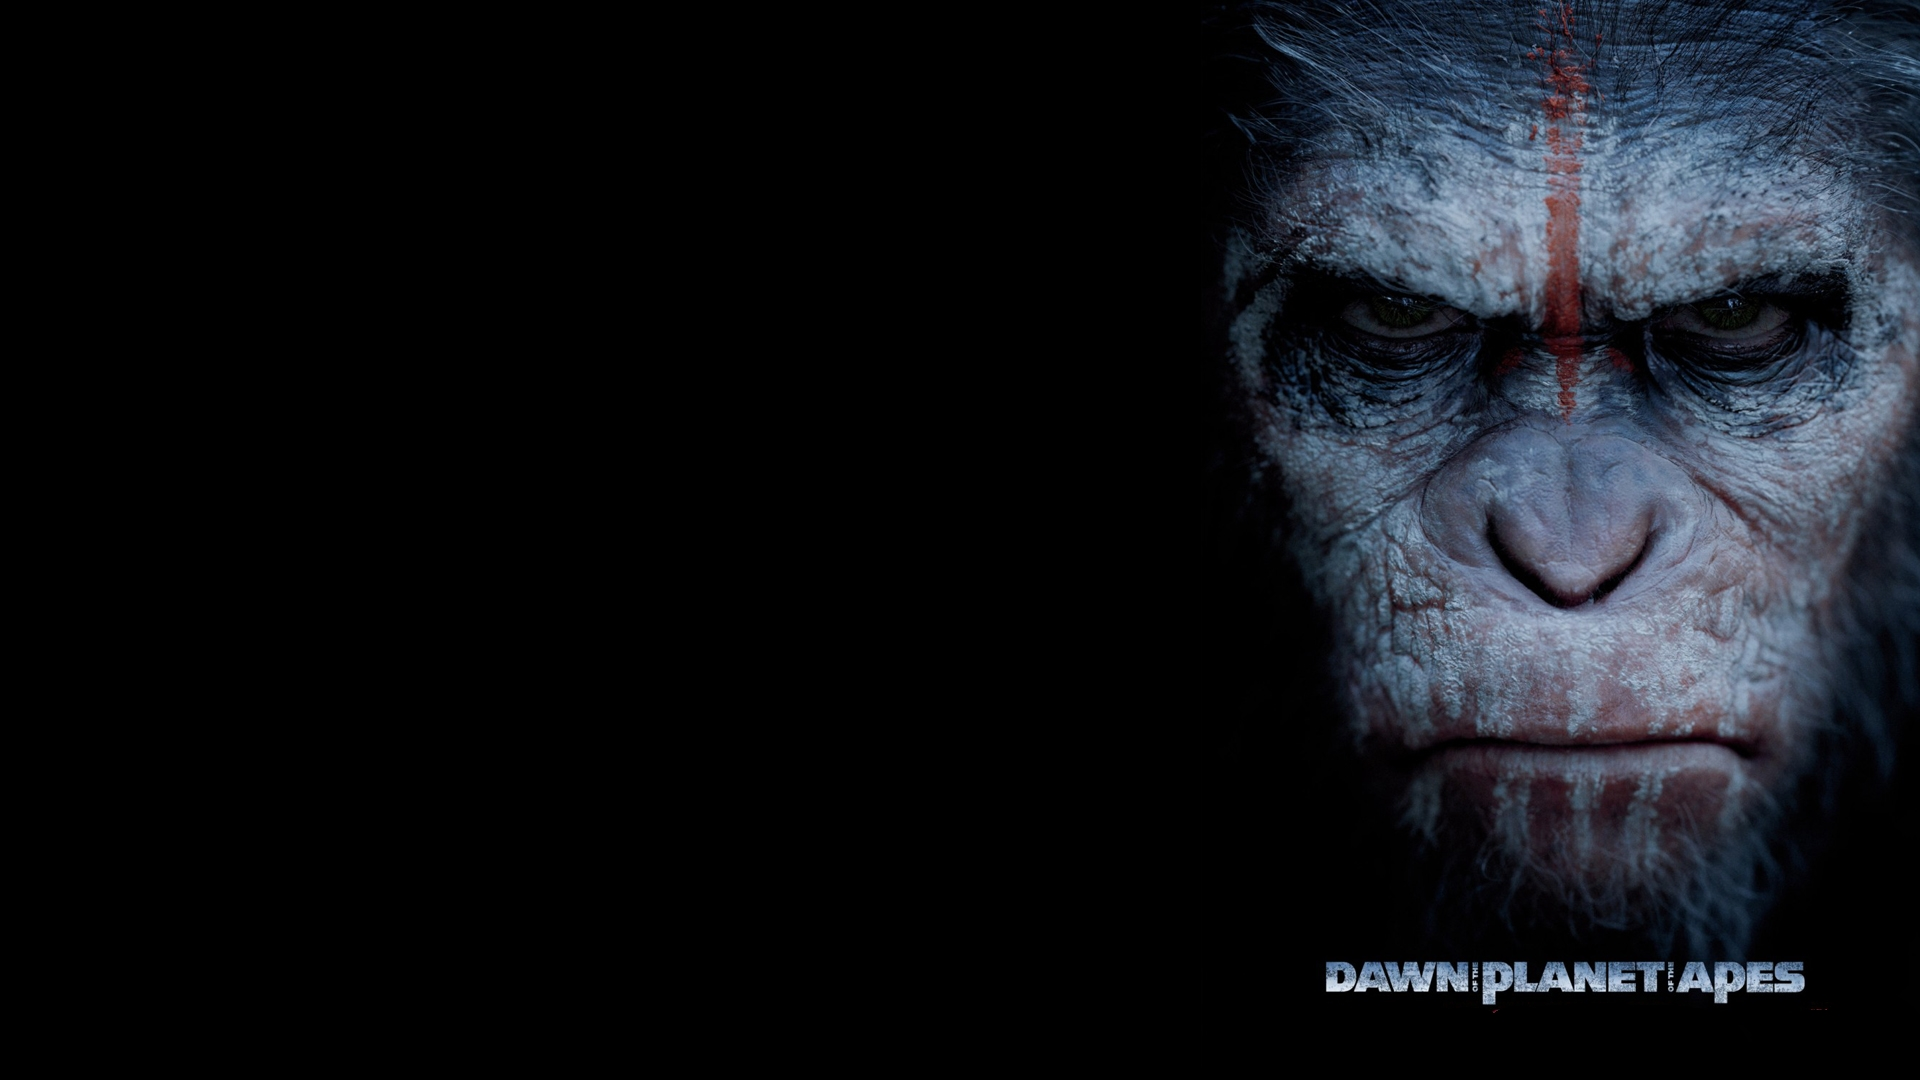 dawn of the planet of the apes 2014 subtitles download